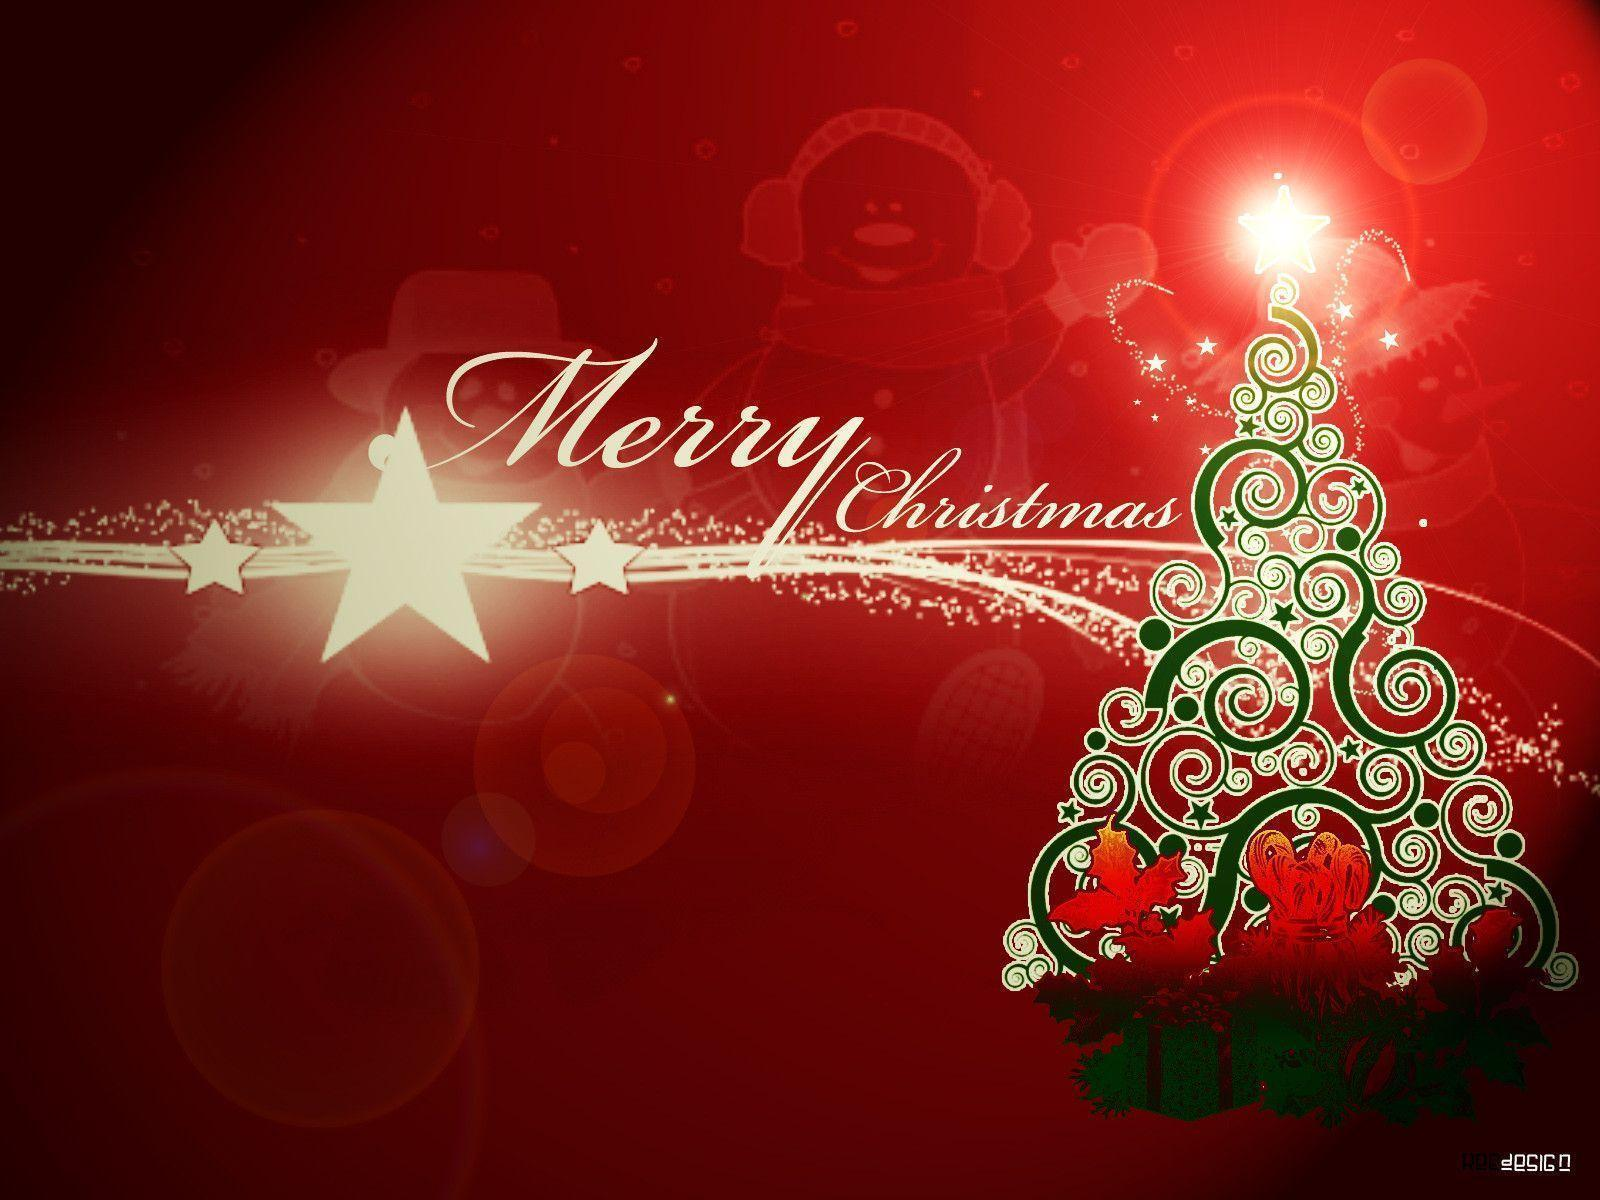 Free Christmas Wallpapers - Wallpaper Cave